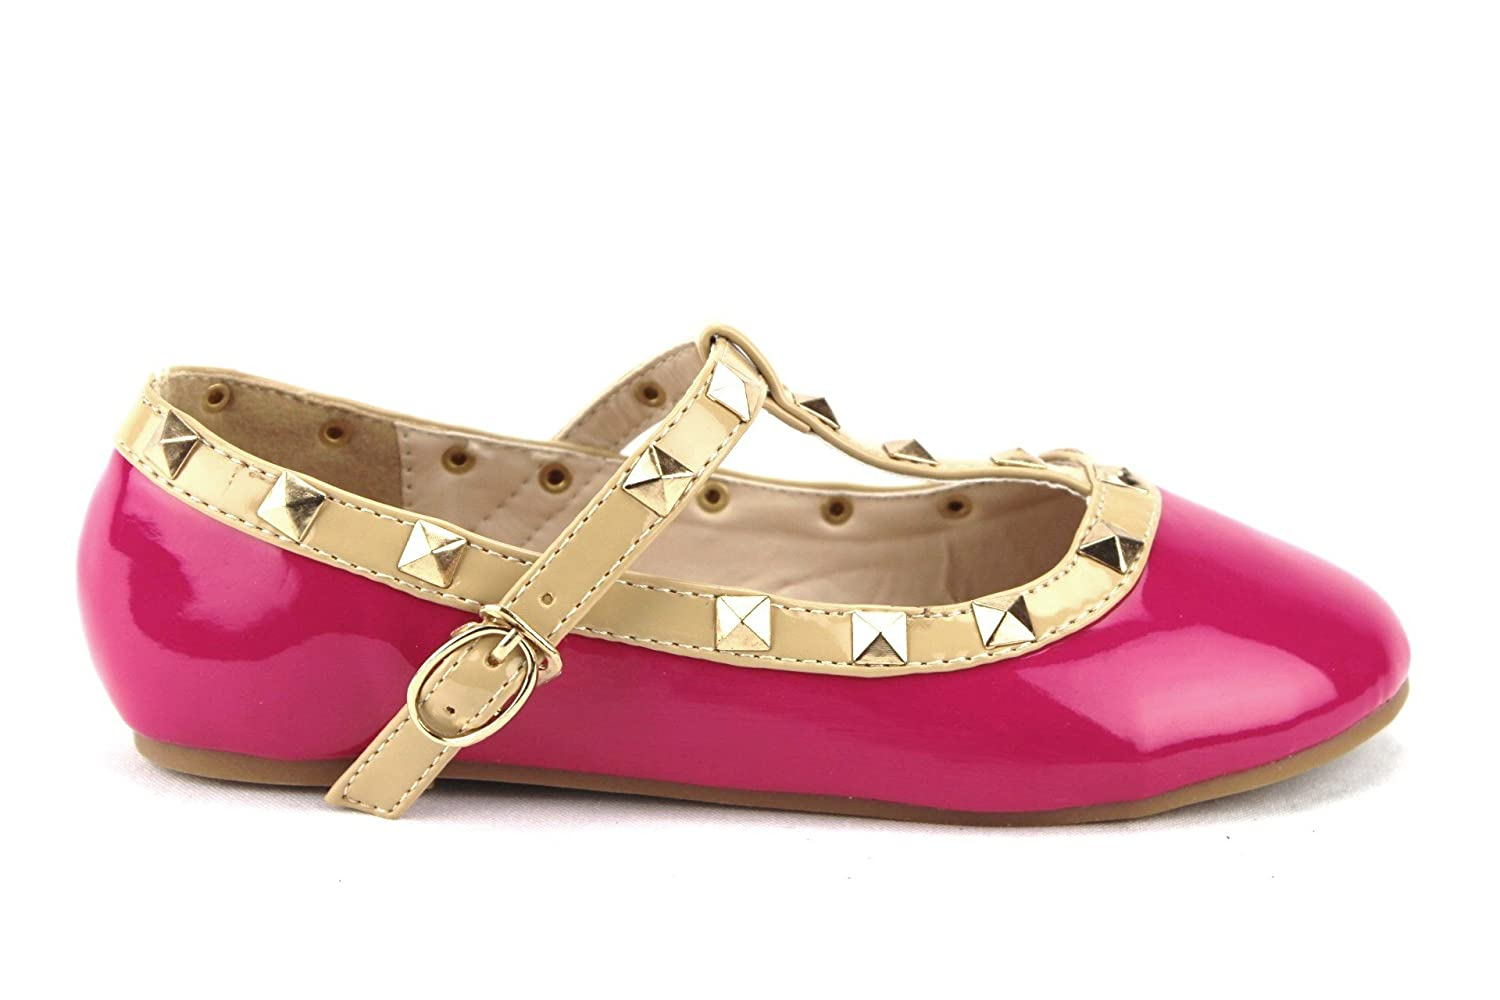 Ositos QQ Little Girls Kids Dolly36 Designer T-Strap Studded Mary Jane Flats Shoes